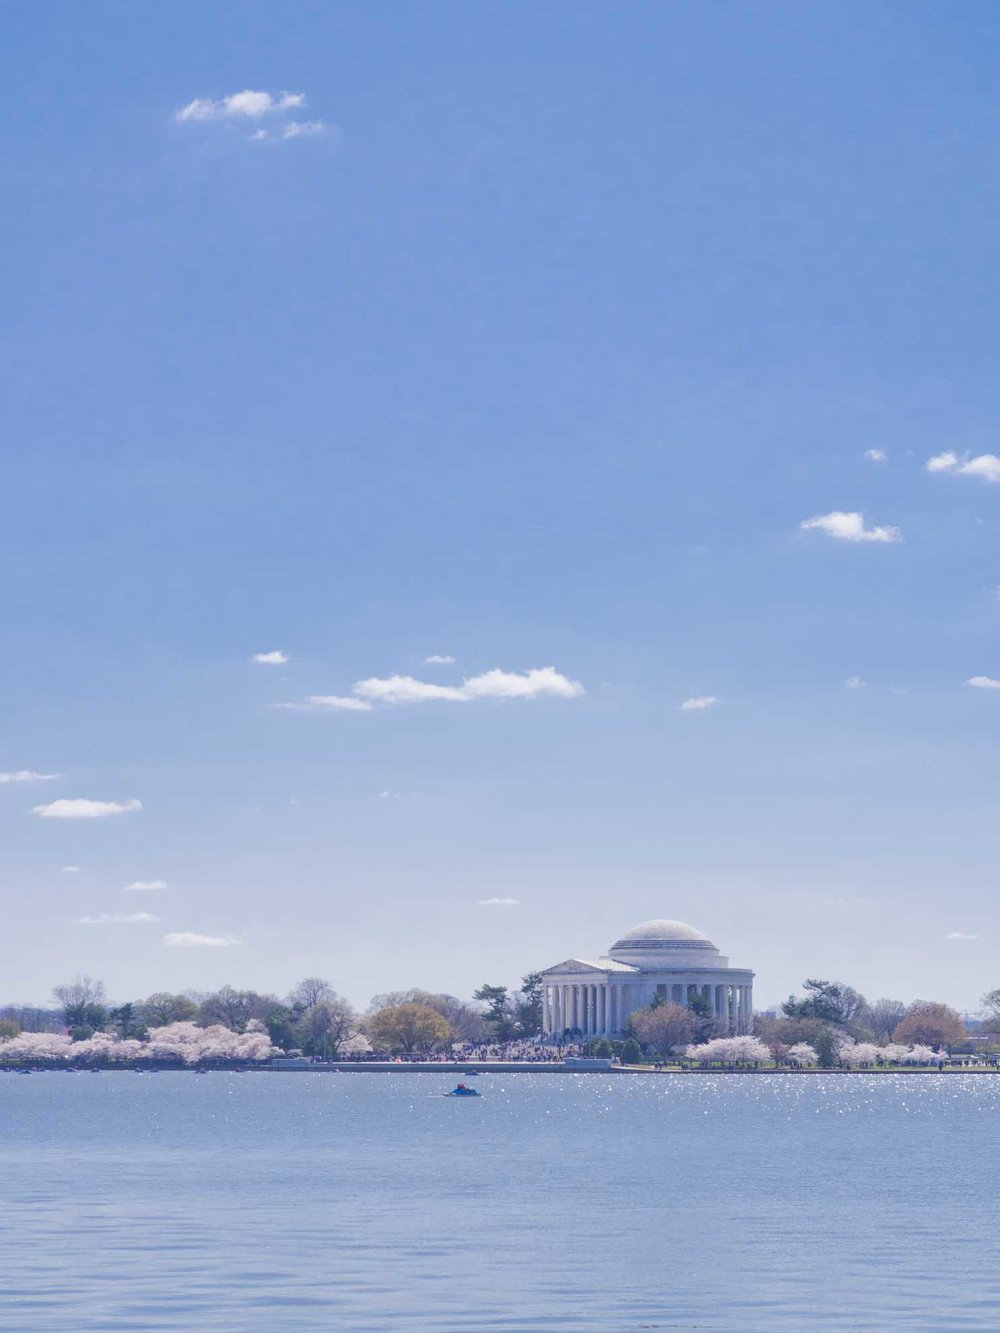 Jefferson Memorial across the Tidal Basin